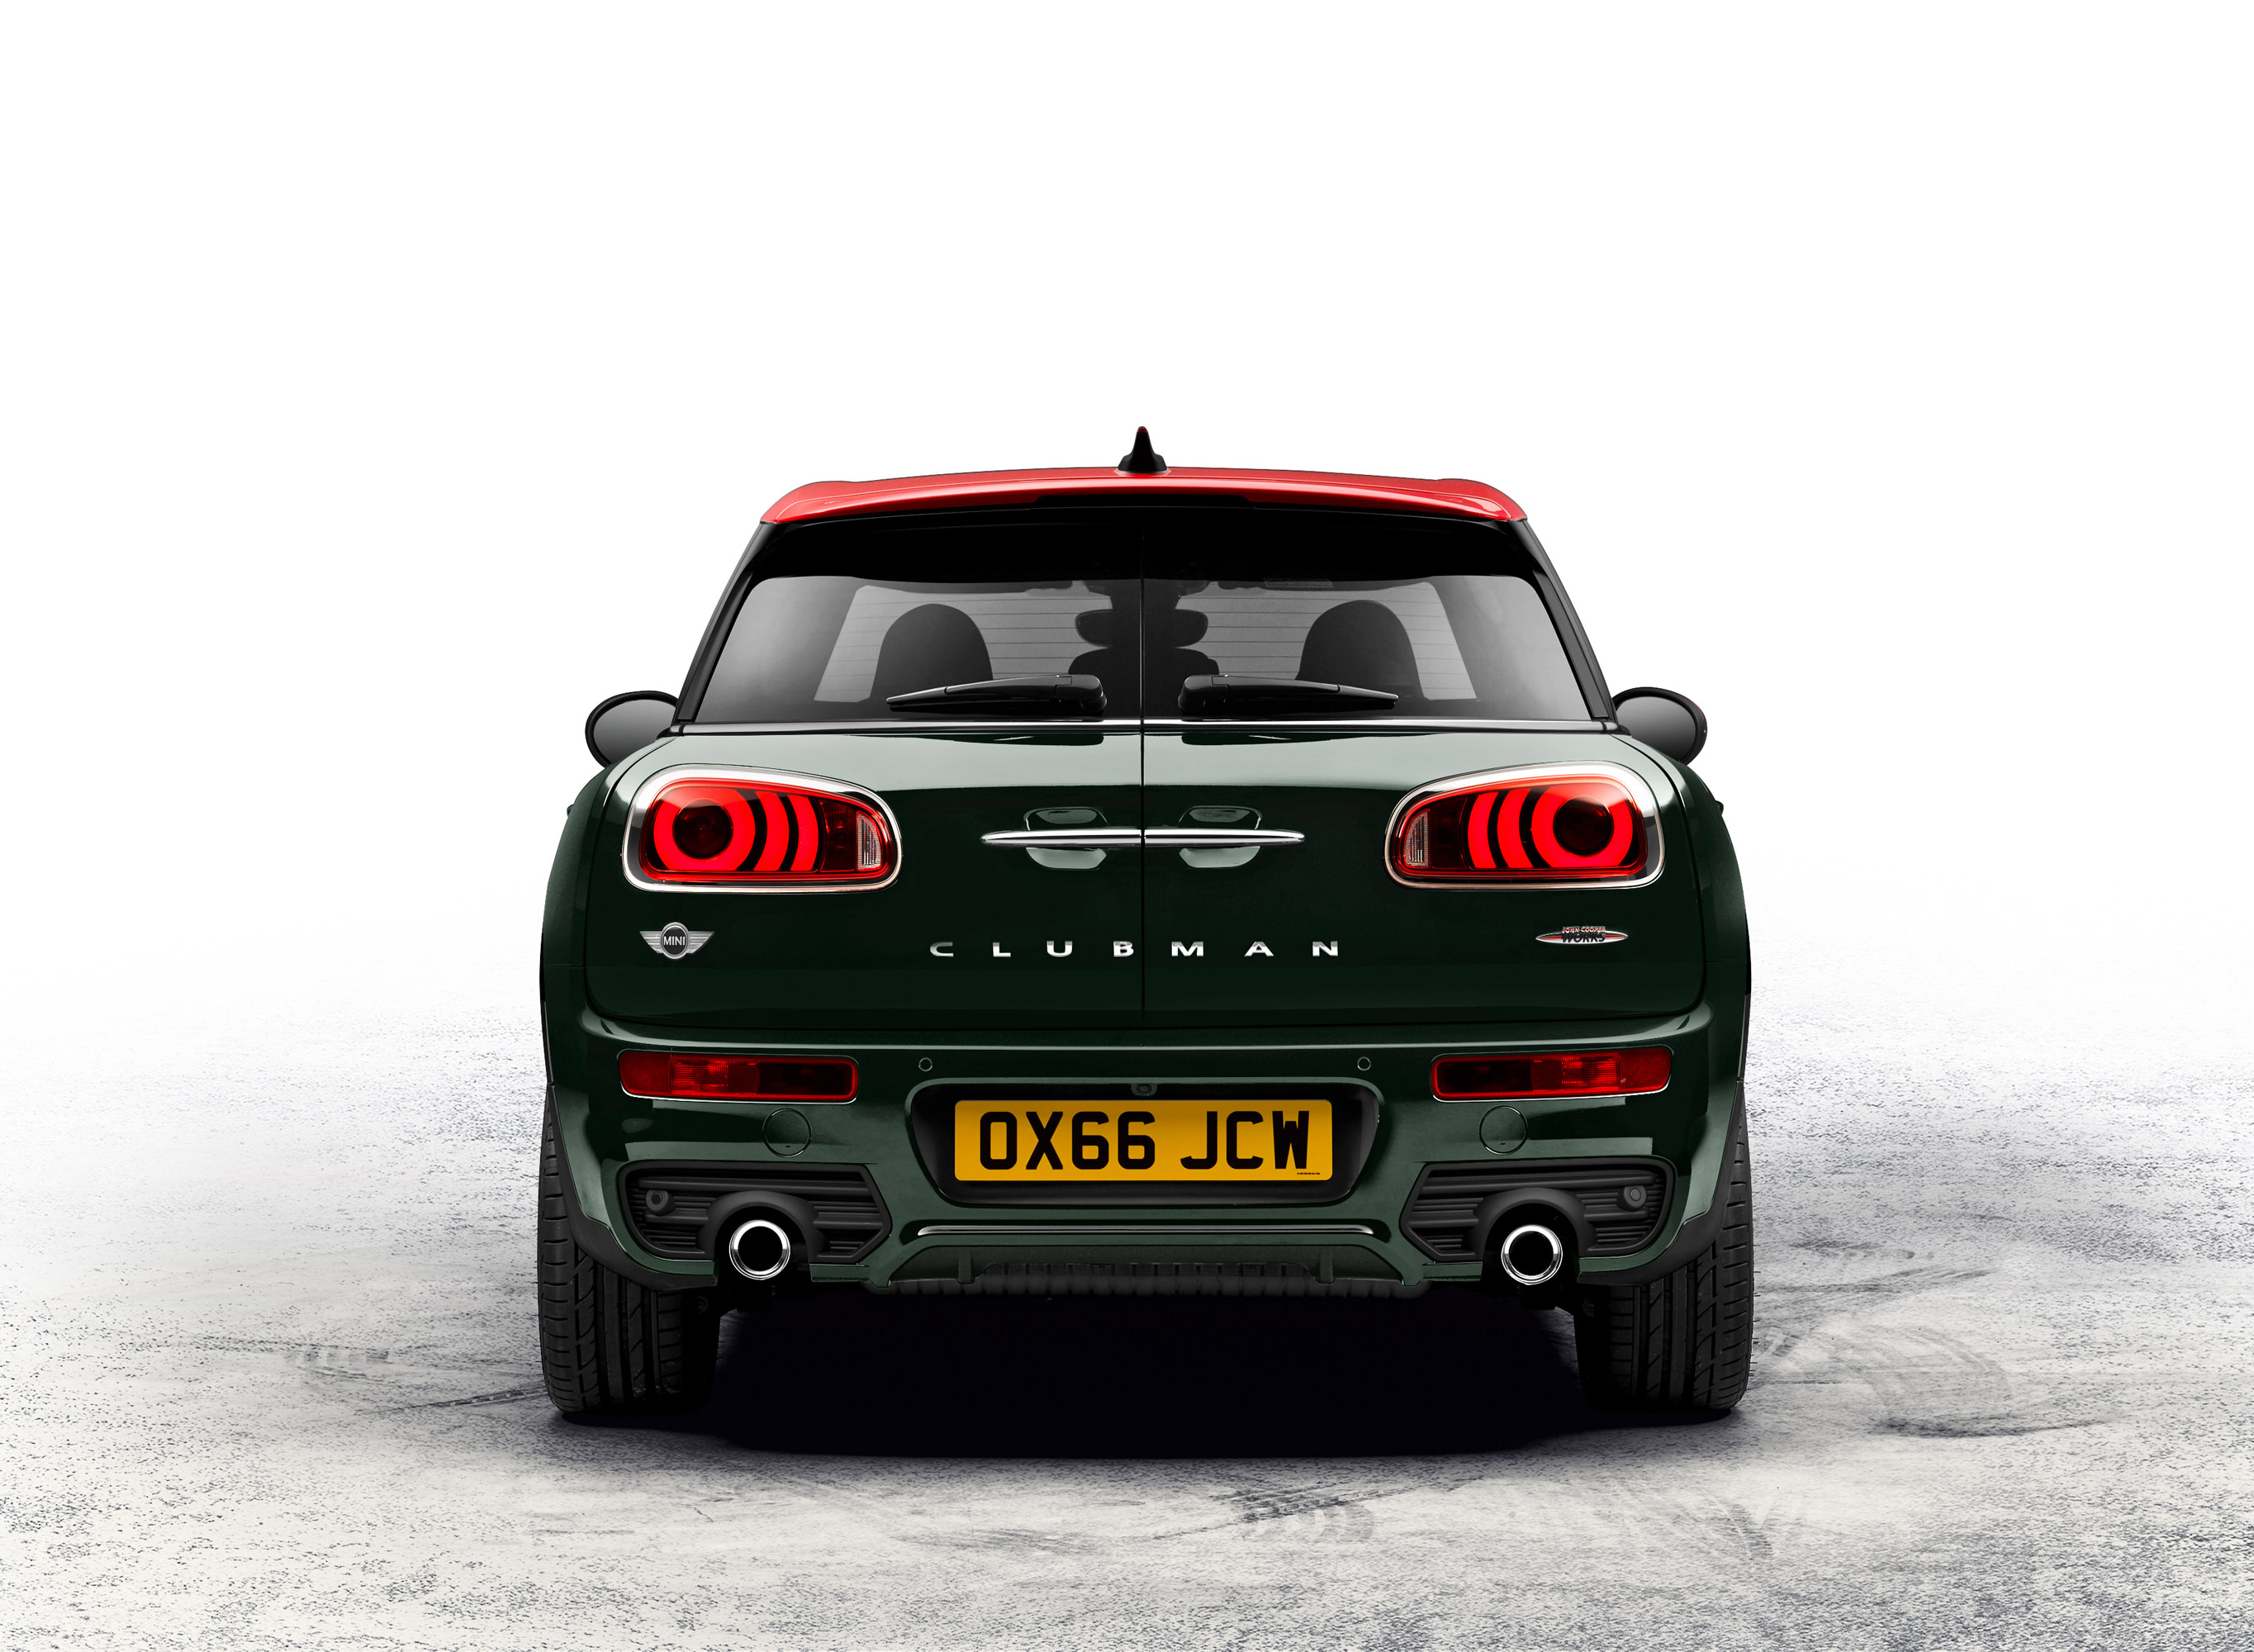 MINI John Cooper Works best model